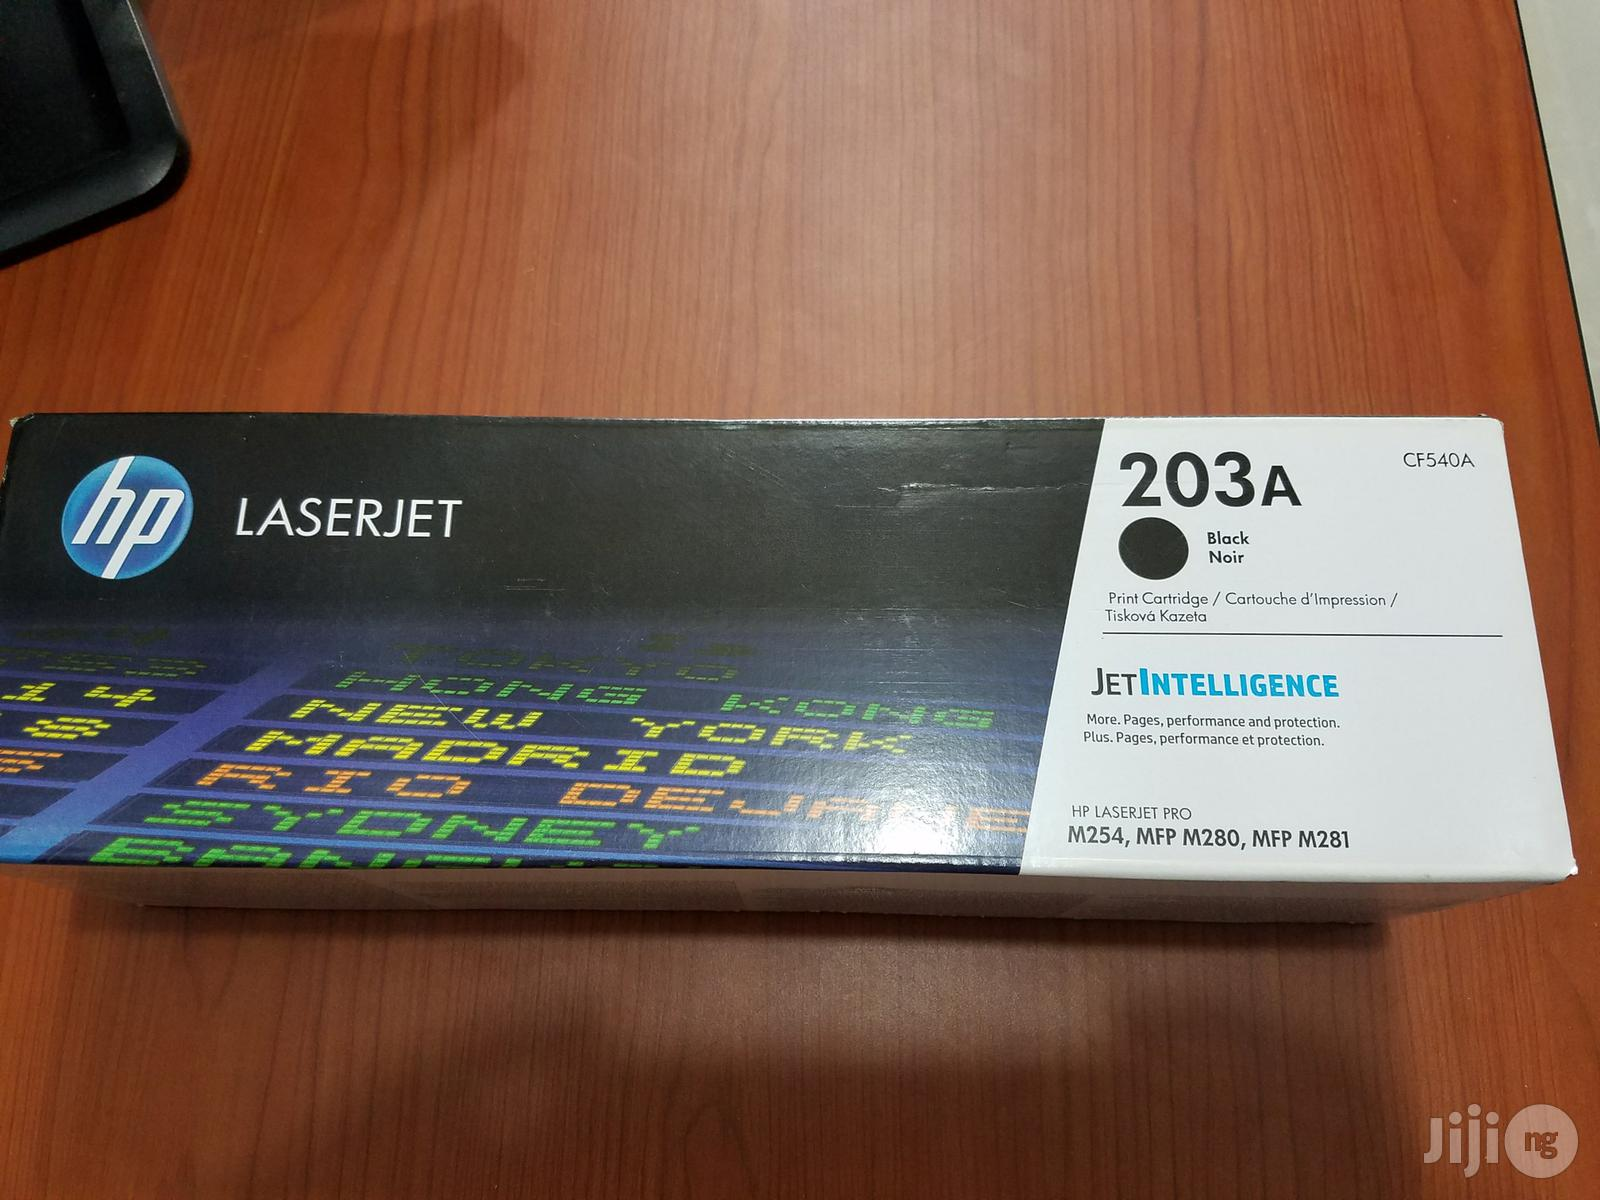 HP 203A Black Toner Cartridge | Accessories & Supplies for Electronics for sale in Ikeja, Lagos State, Nigeria